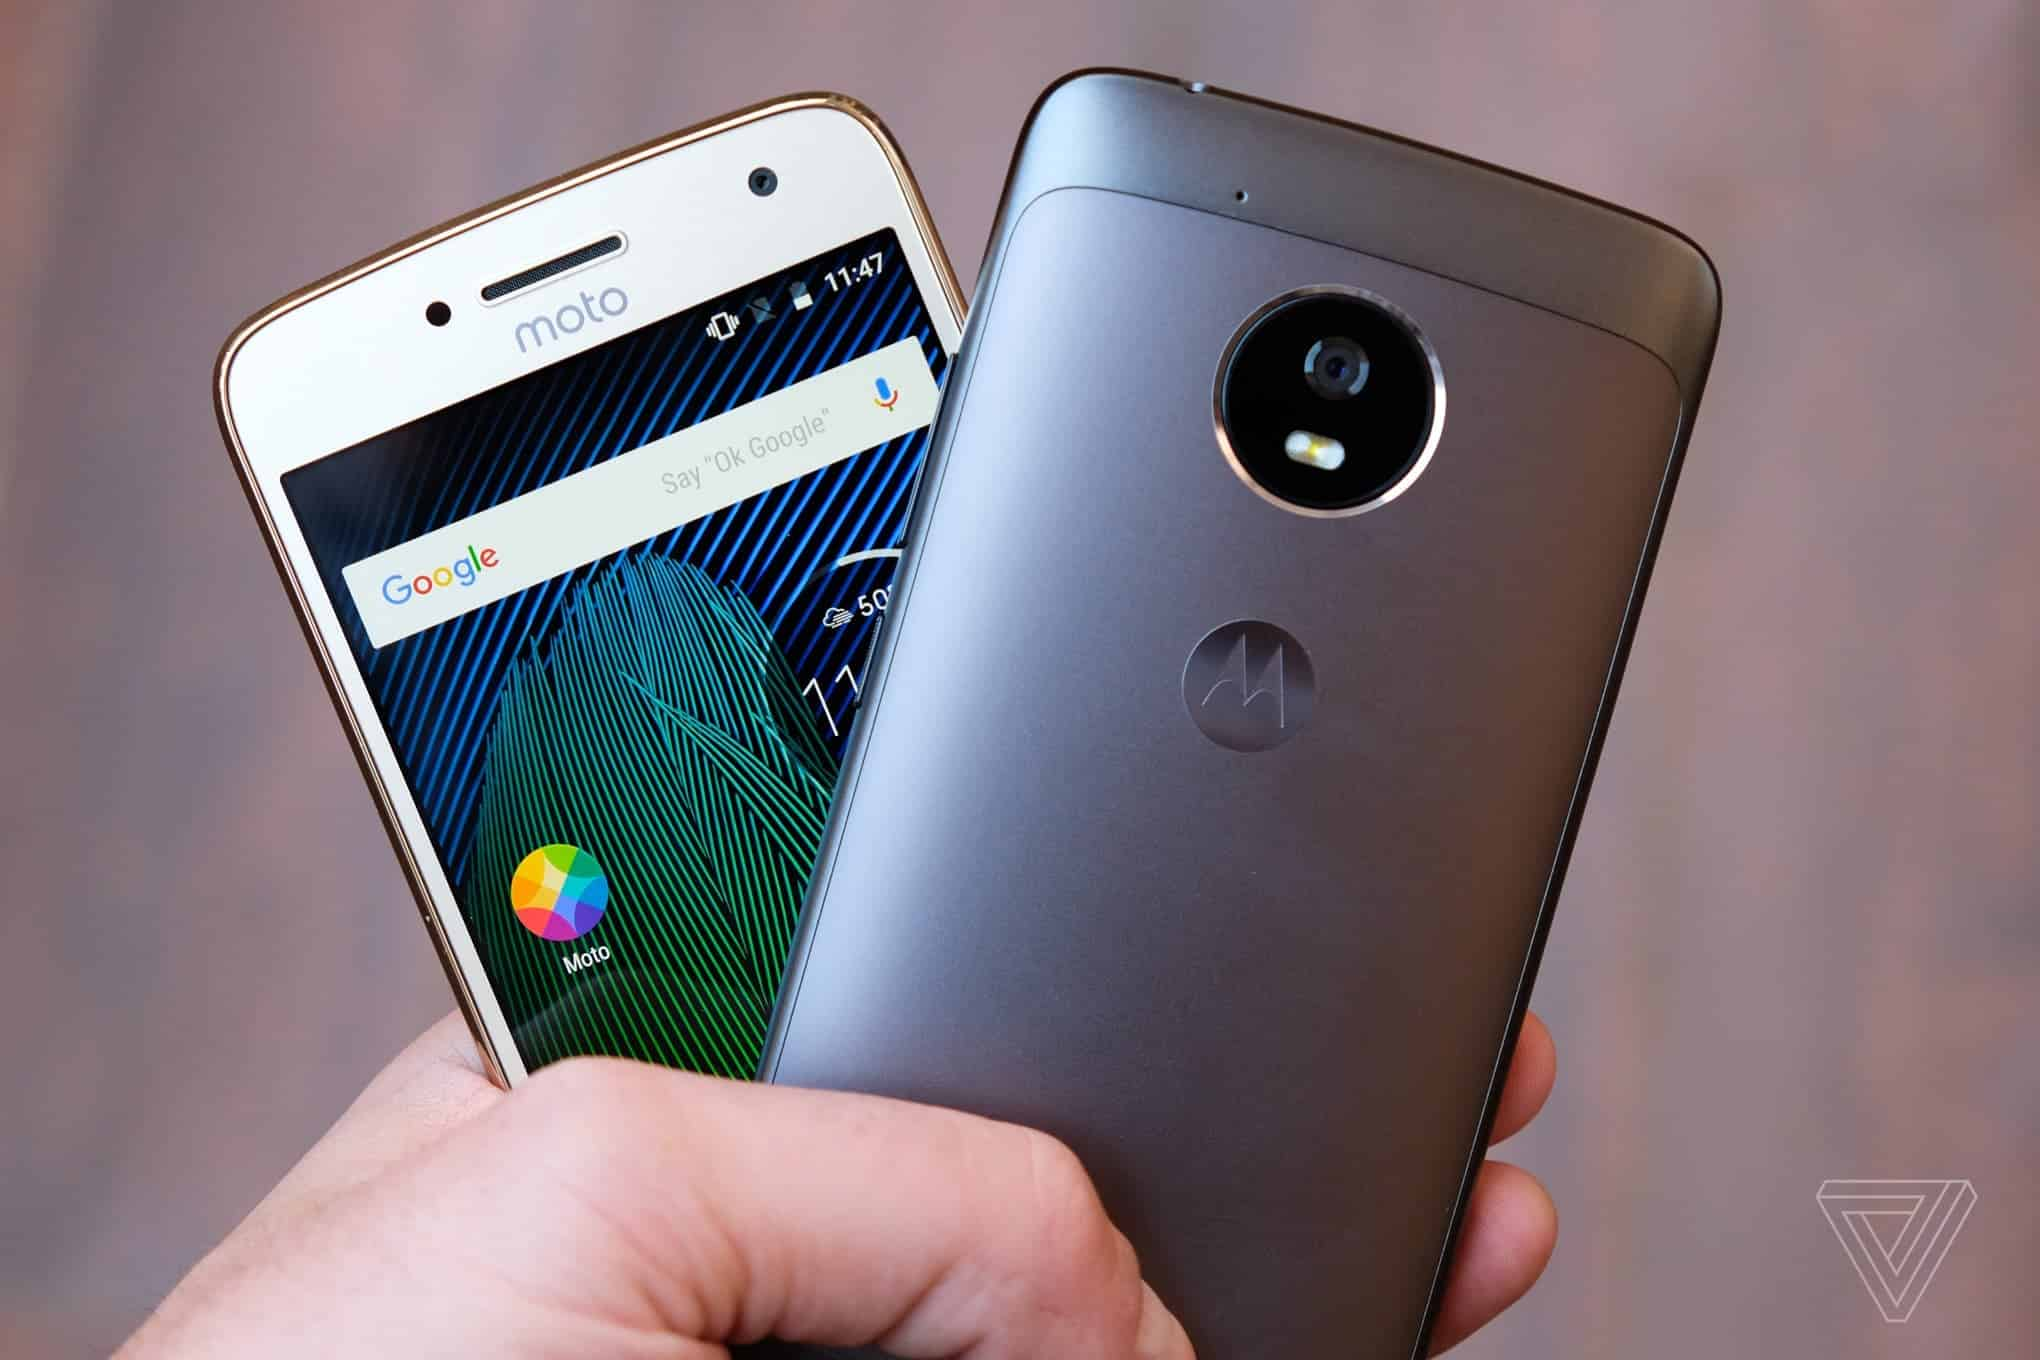 Top Moto G5 Plus features